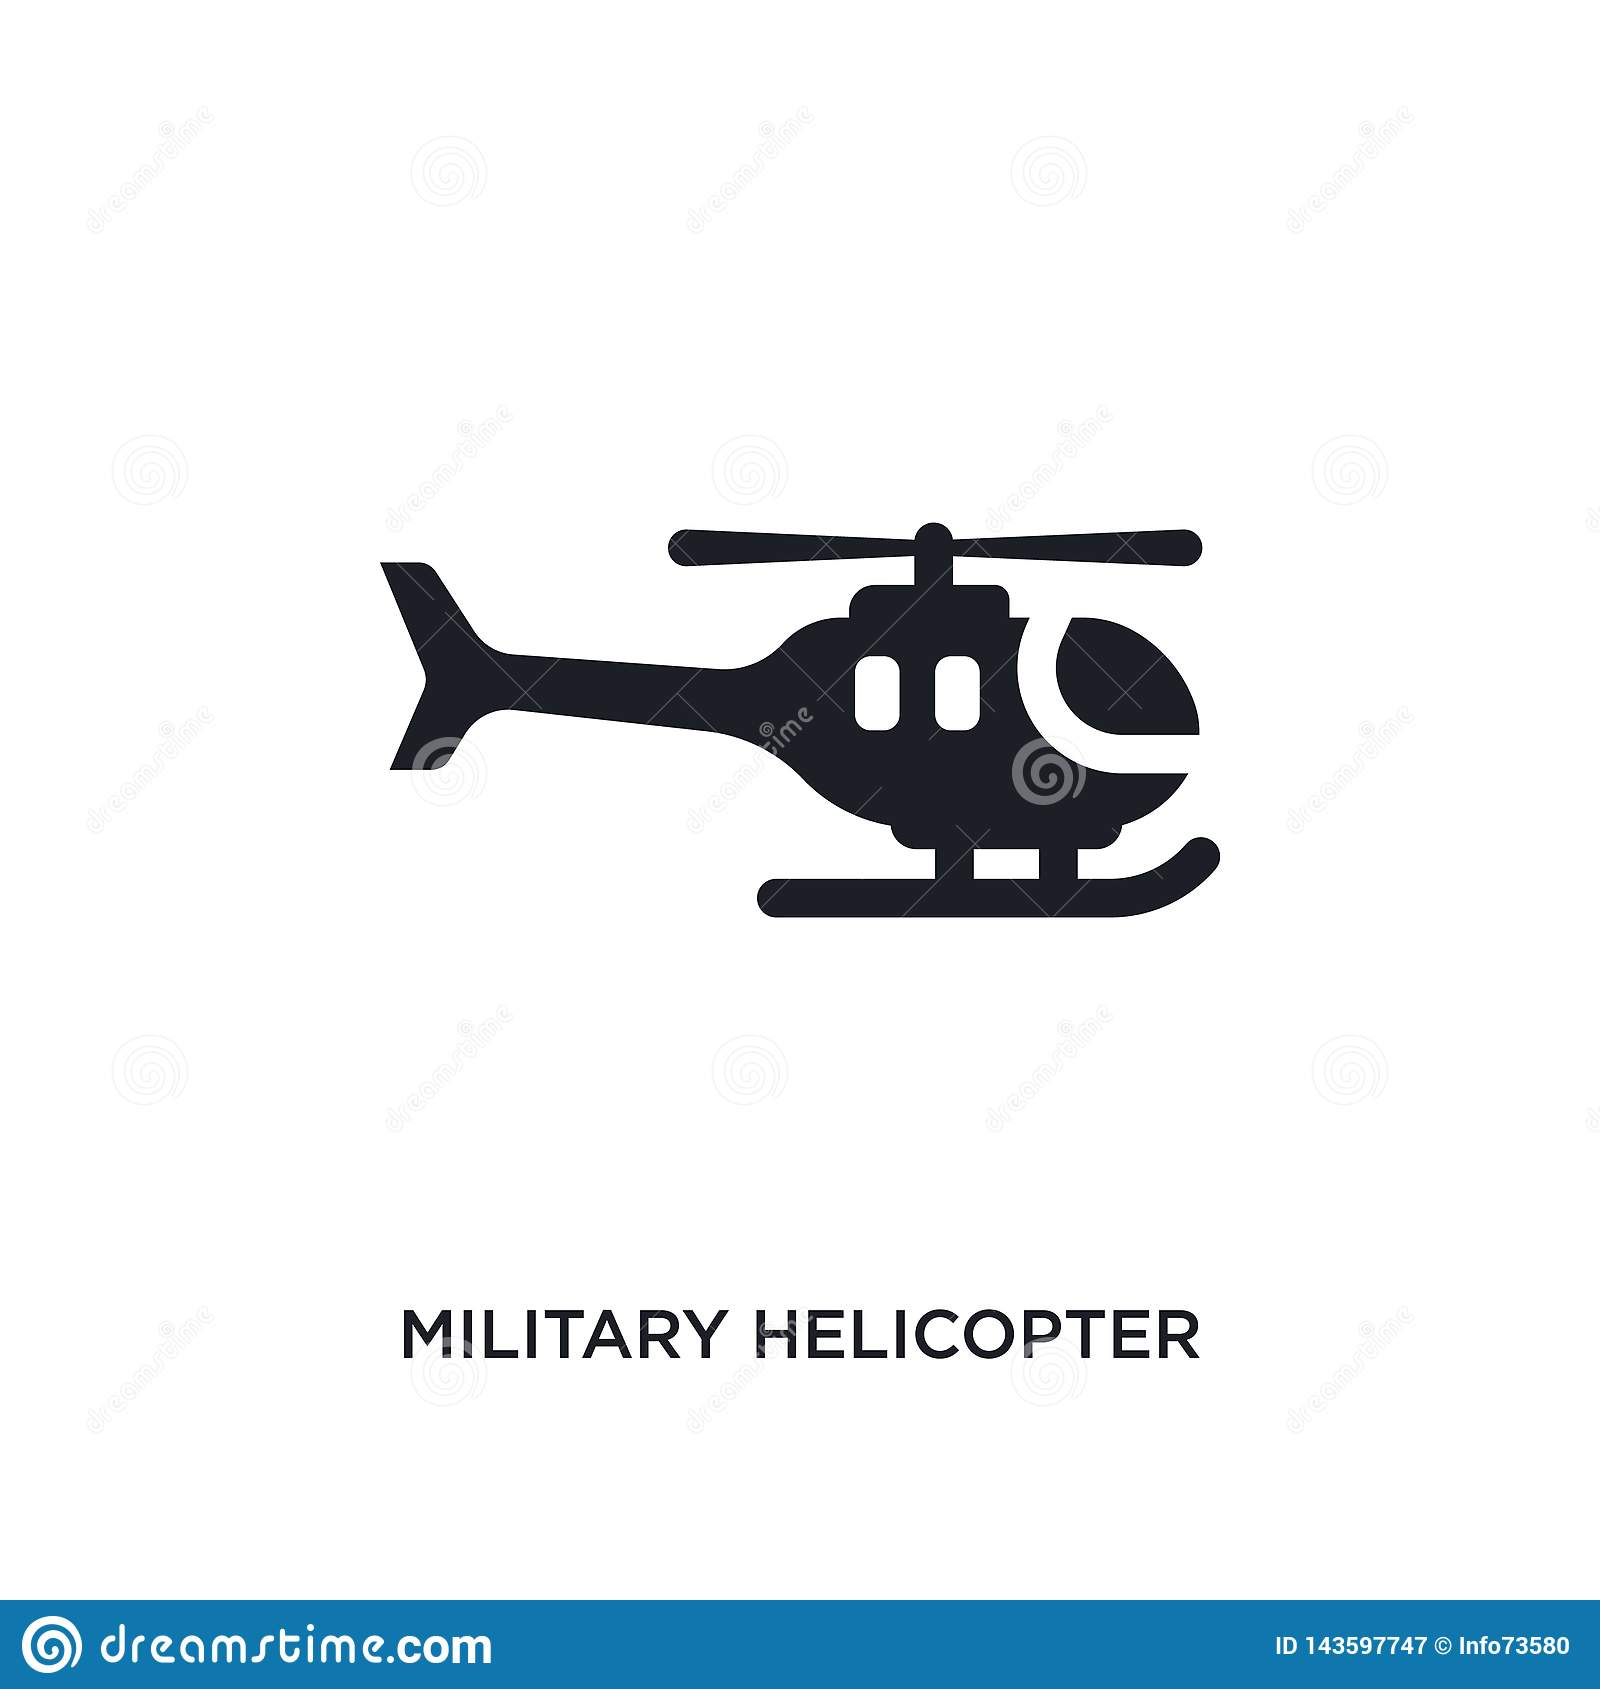 black military helicopter isolated vector icon. simple element illustration from transport-aytan concept vector icons. military